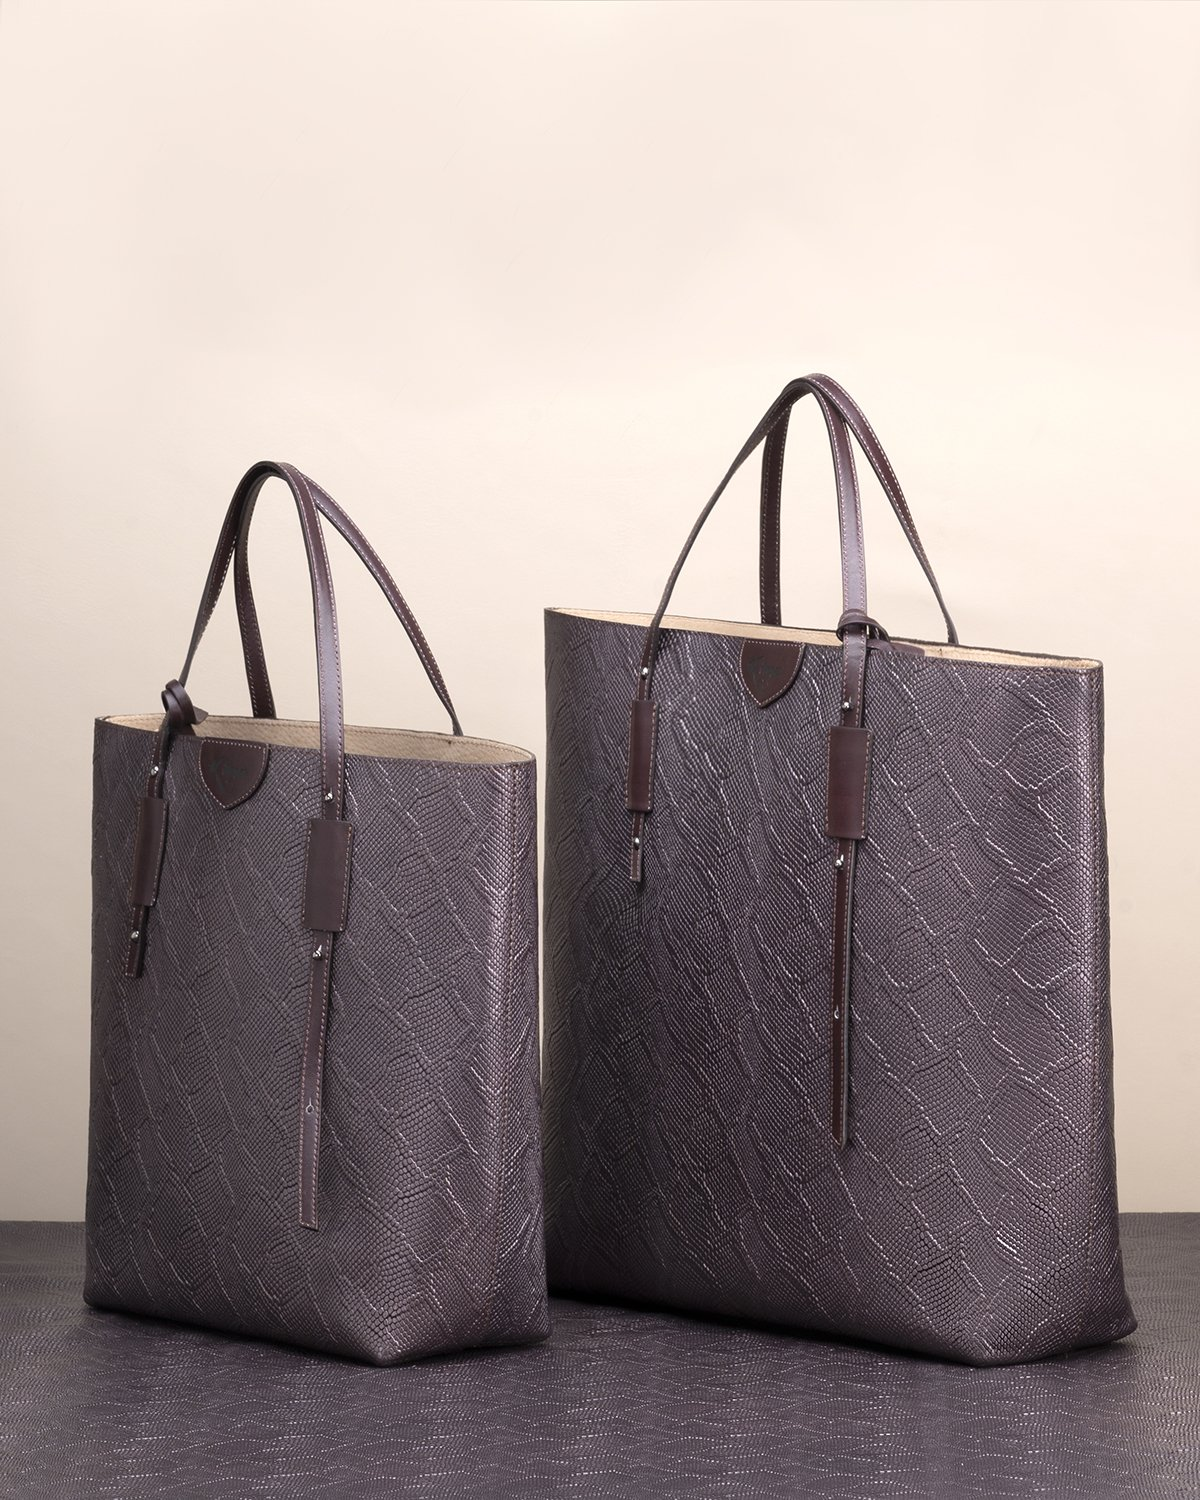 Kilesa wally shopper made with italian calfskin